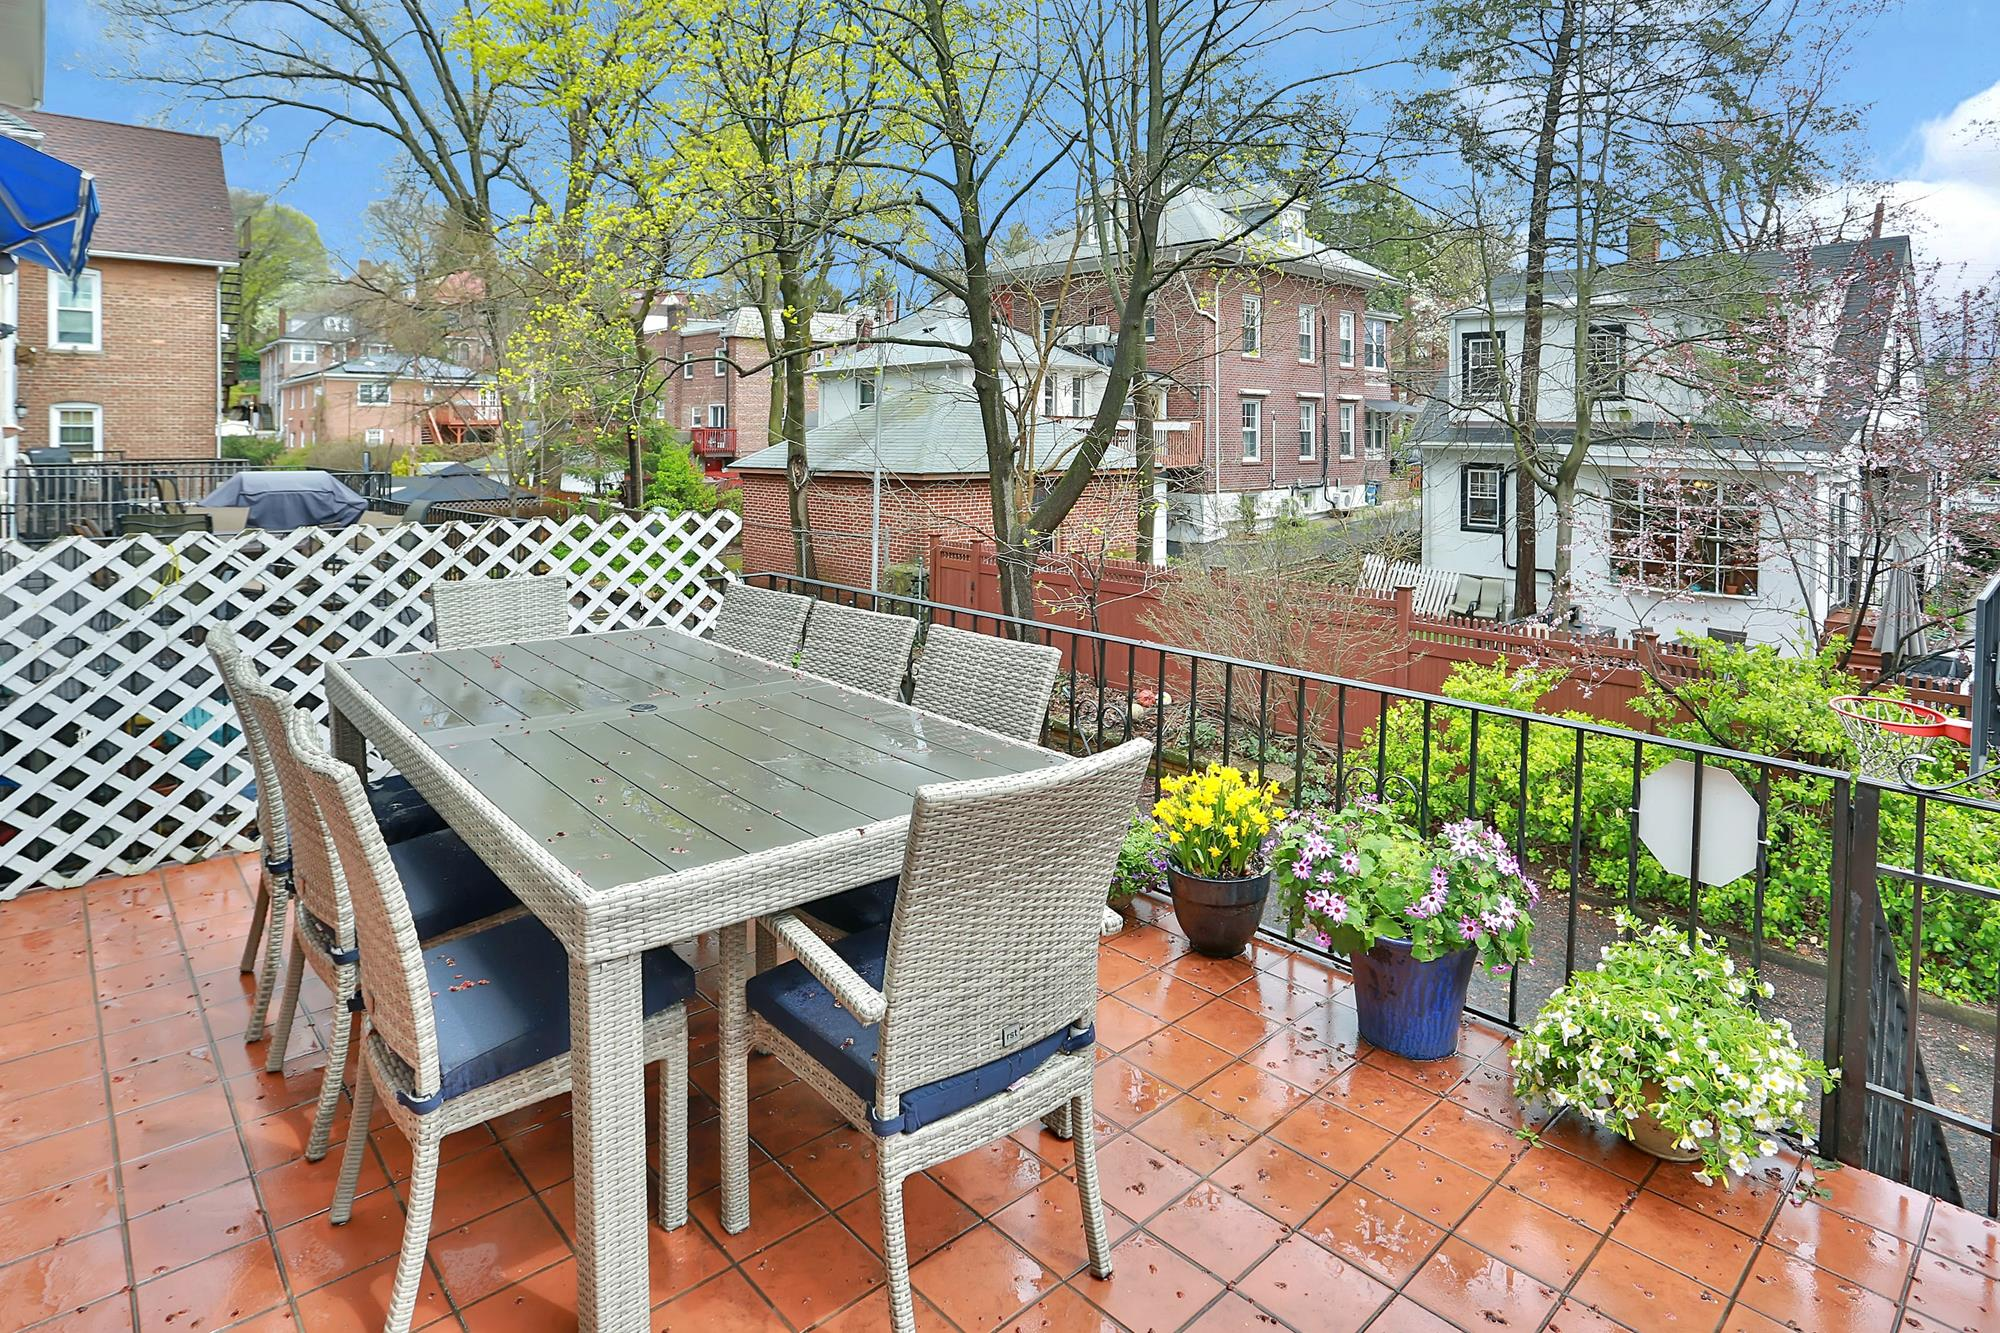 Renovated Picturesque 4-Bd. Brick & Stucco House w/ Decks, Patio & Yard